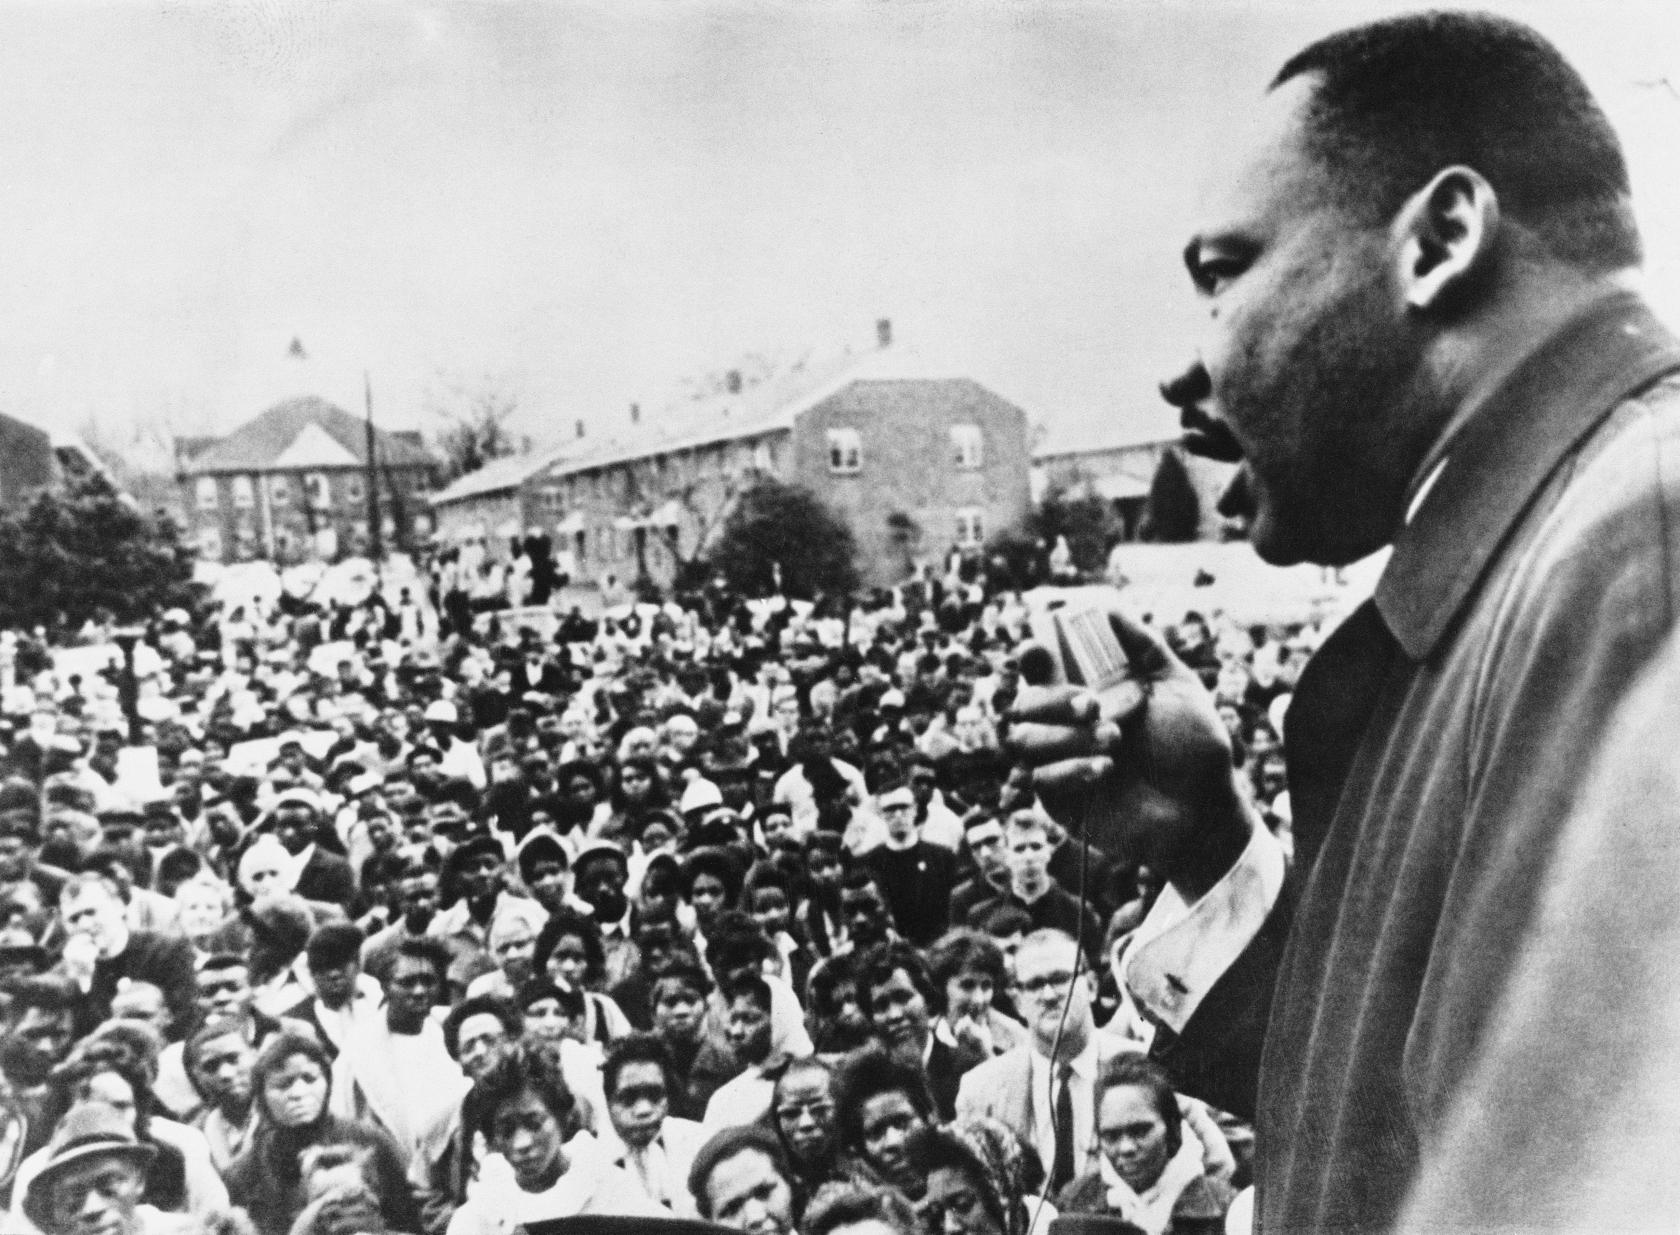 April 1965: Dr Martin Luther King (1929 - 1968) addresses civil rights marchers in Selma, Alabama. (Photo by Keystone/Getty Images)